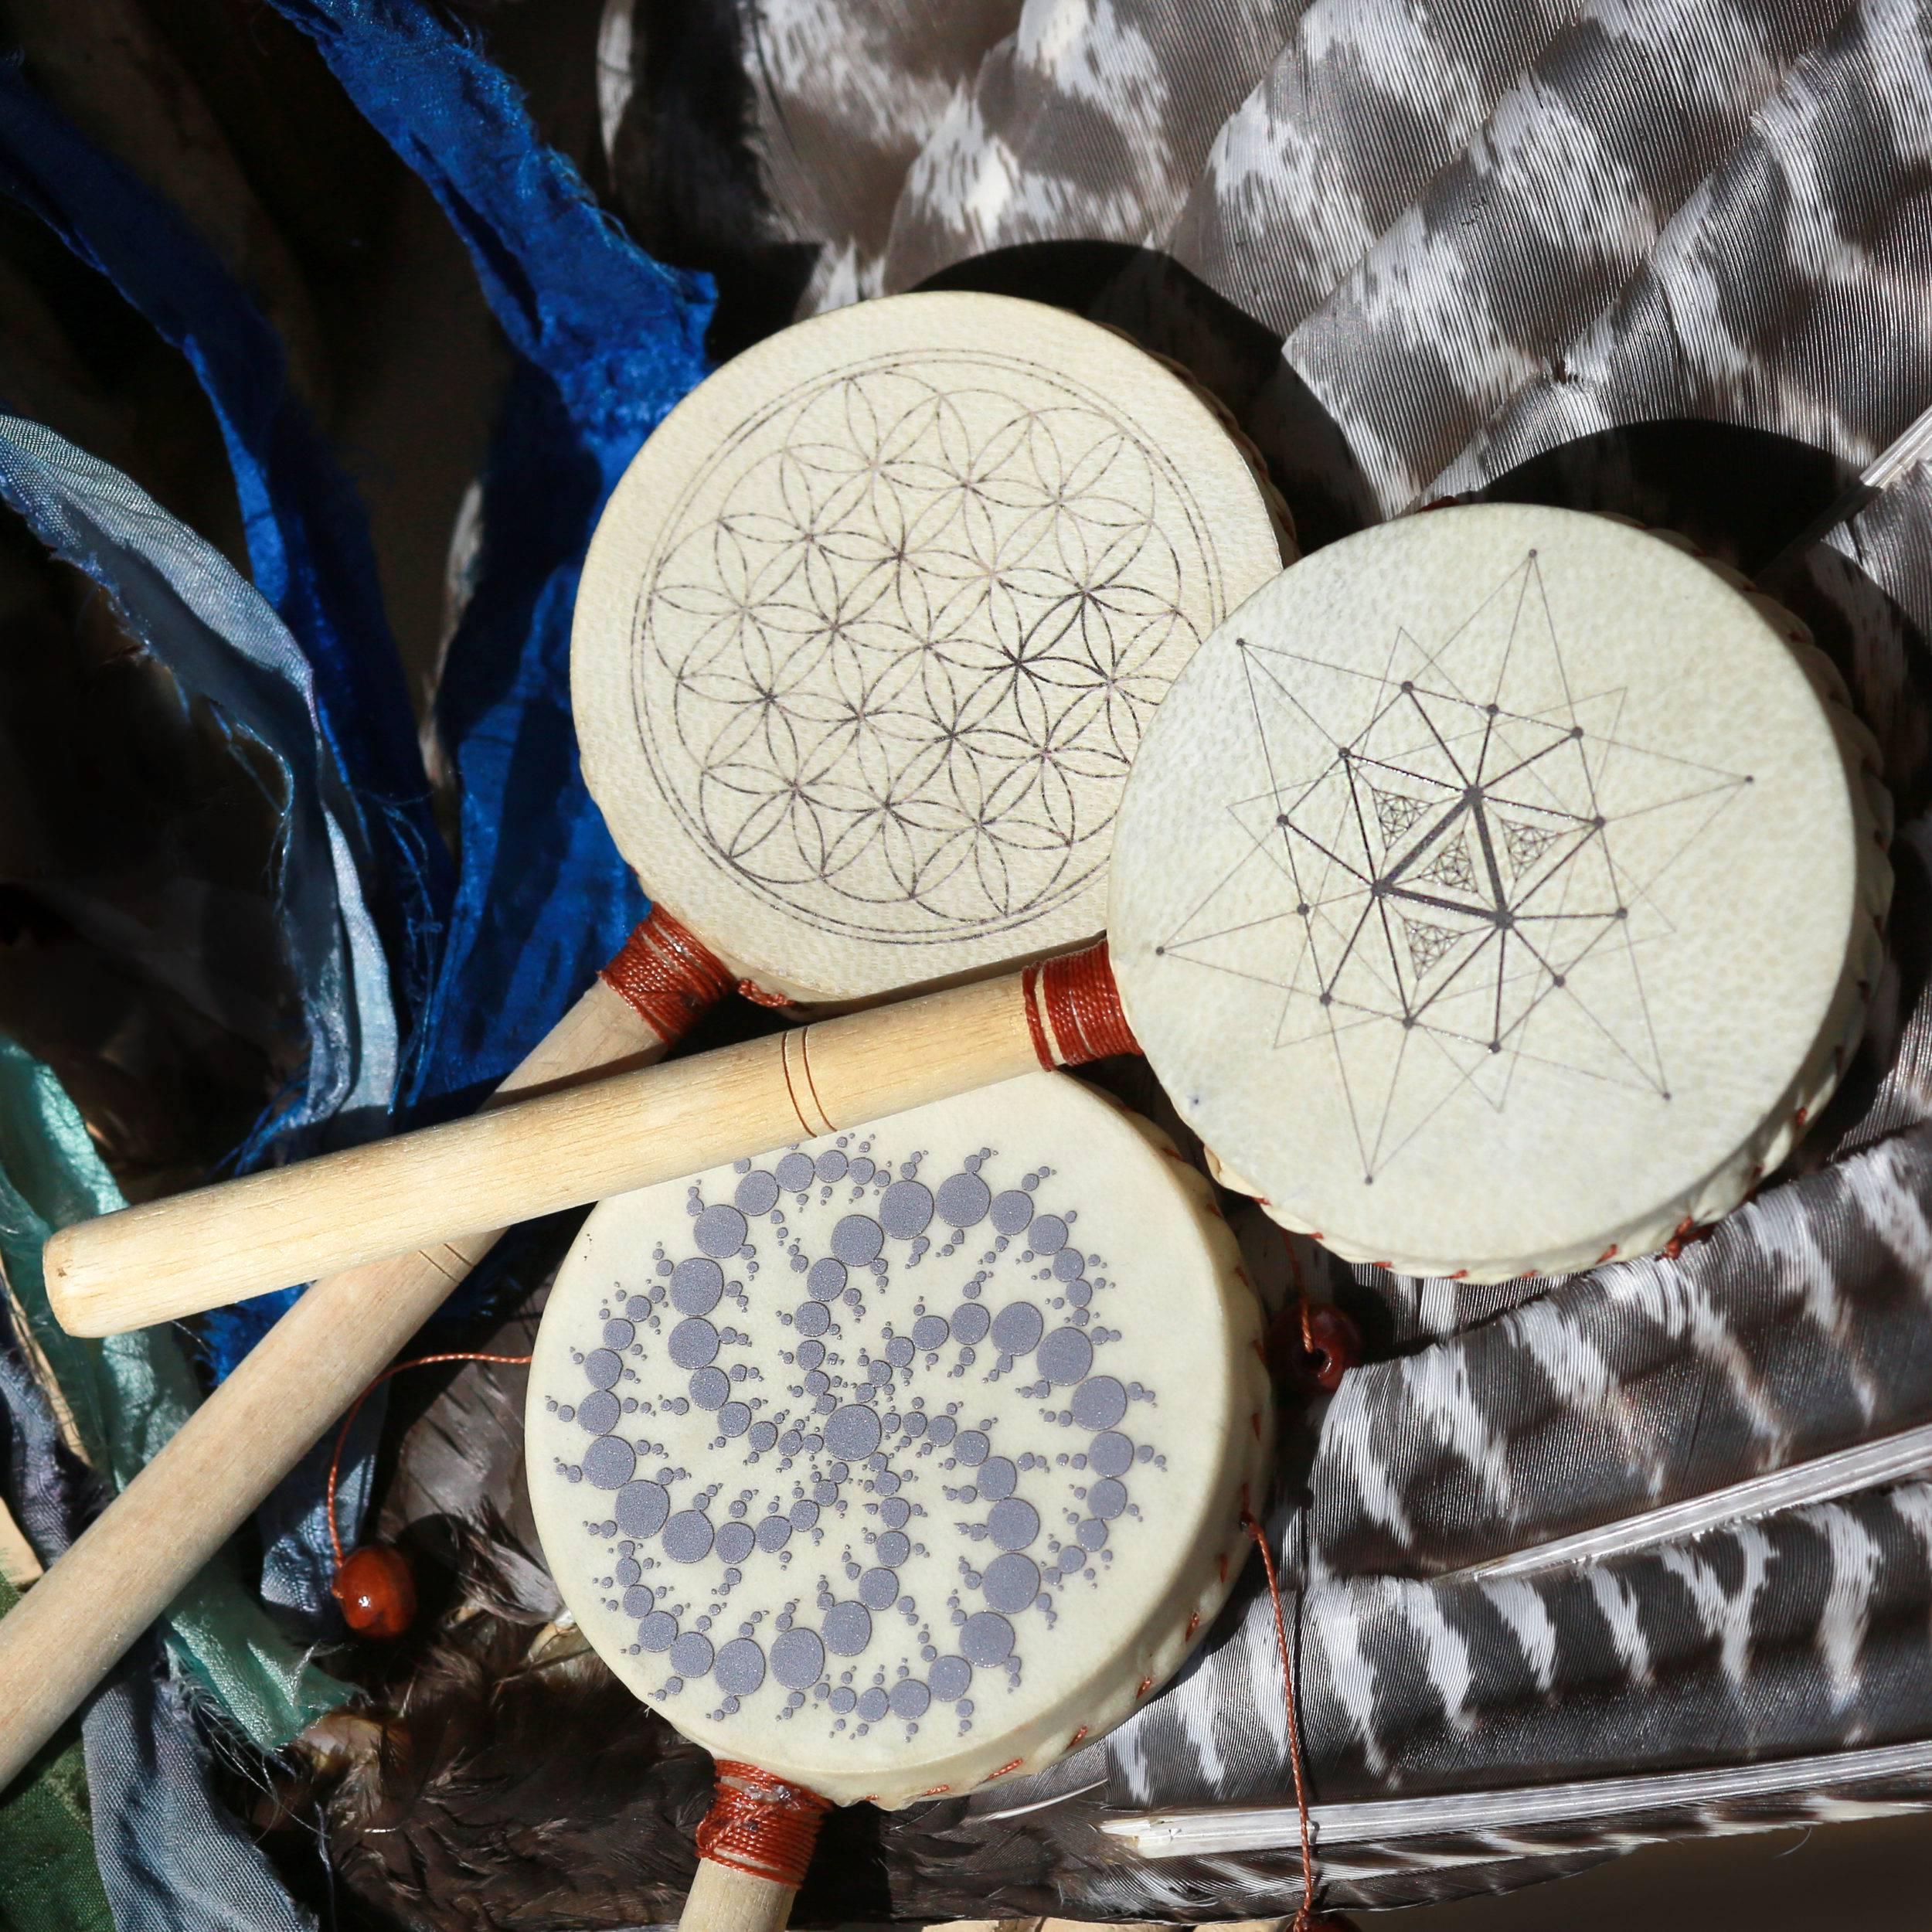 Rattle drums